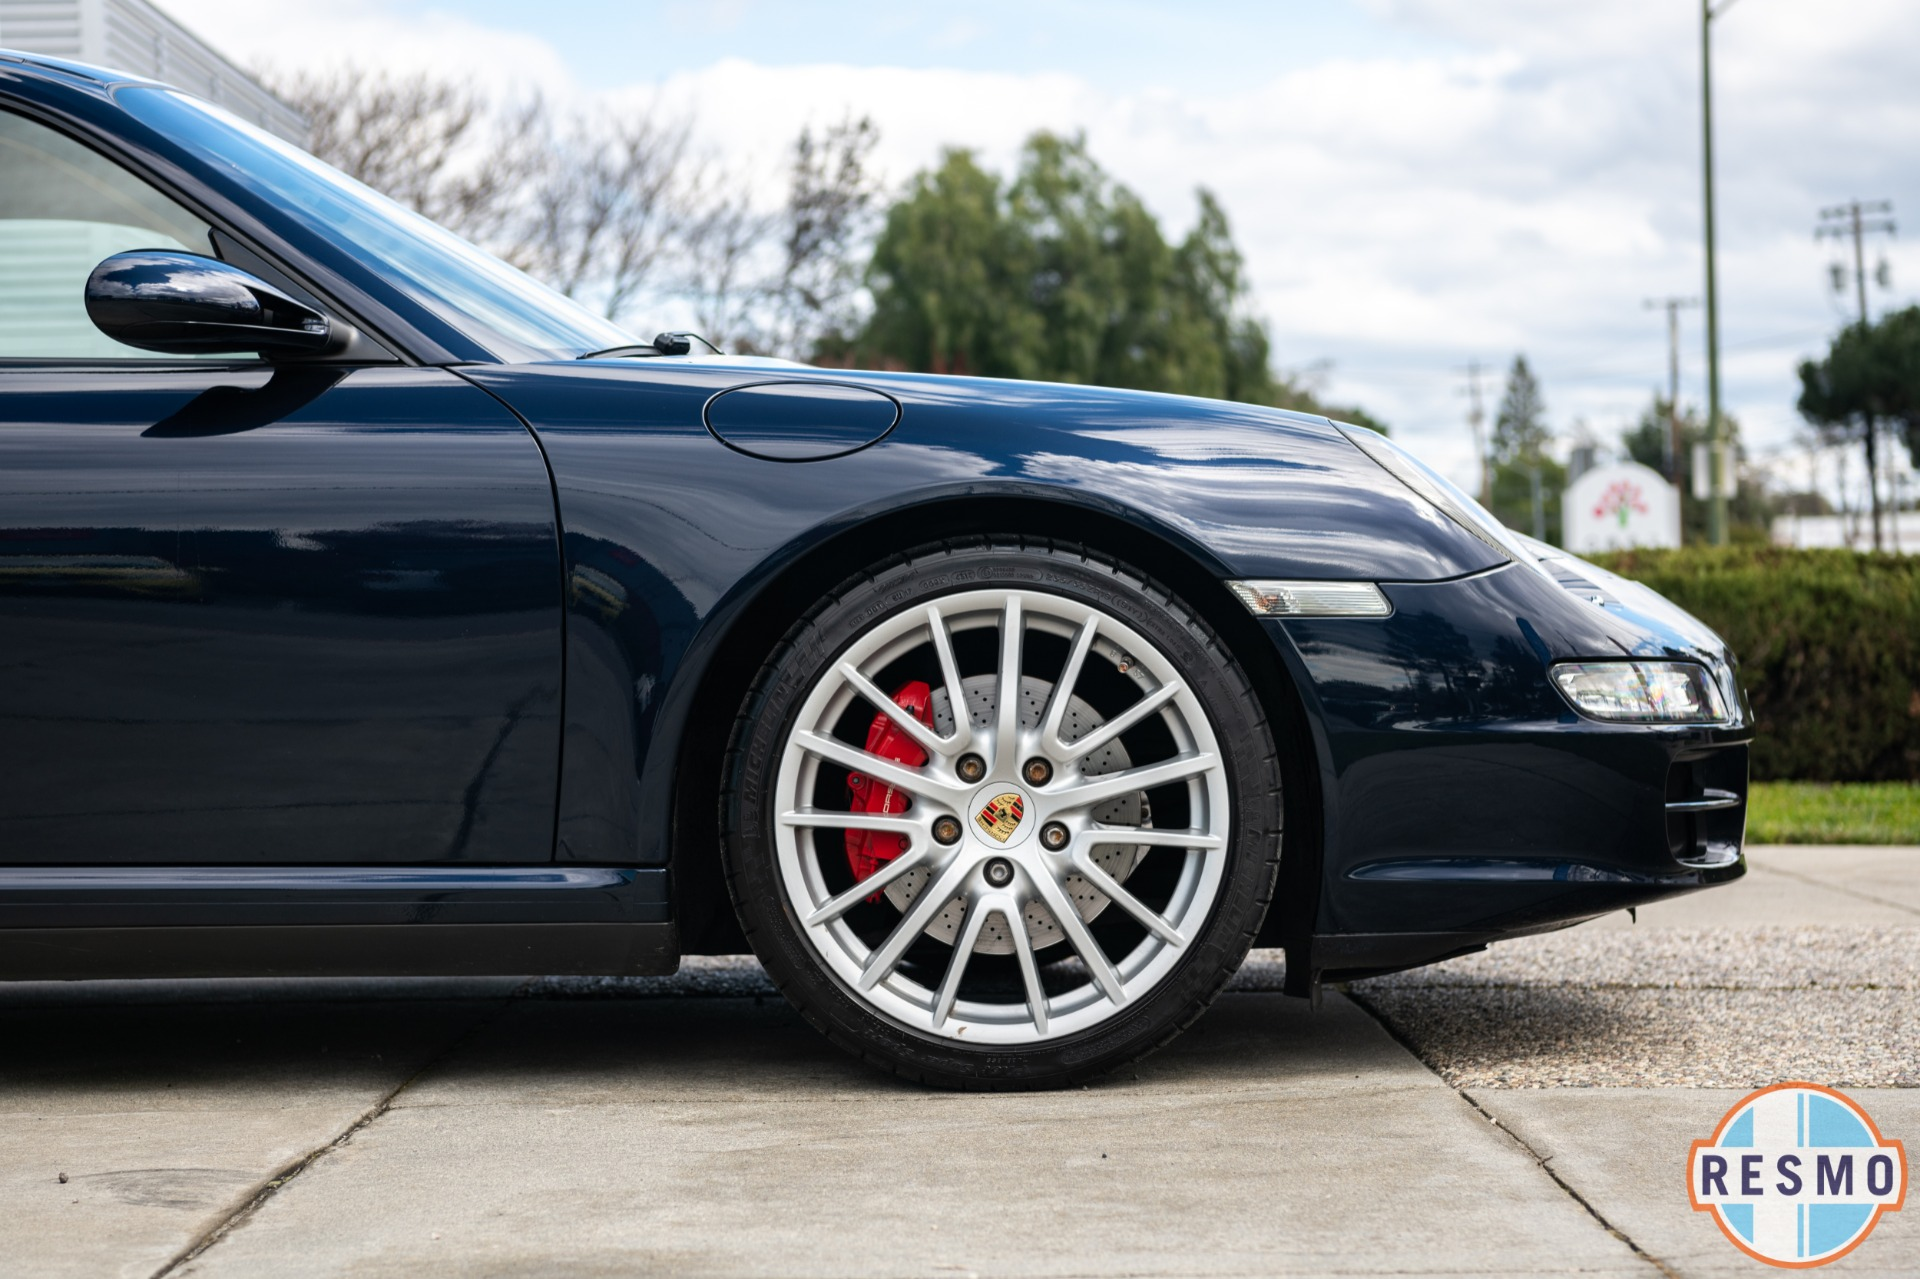 Used 2008 Porsche 911 Carrera 4S Used 2008 Porsche 911 Carrera 4S for sale $41,999 at Response Motors in Mountain View CA 3